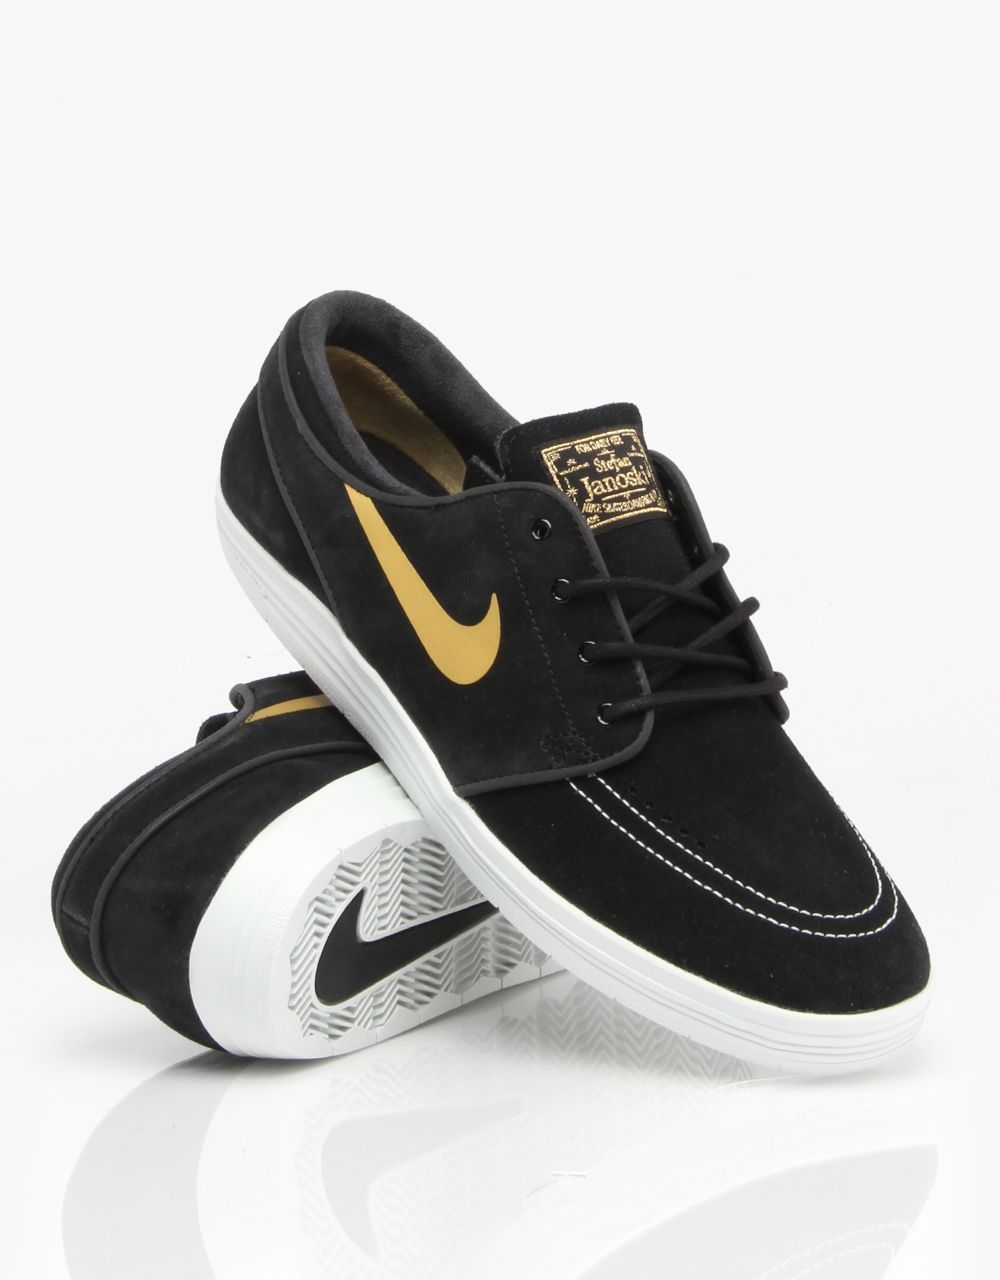 hot sale online 9967e b48cf Nike SB Lunar Stefan Janoski Skate Shoes - BlackMetallic Gold- White -  RouteOne.co.uk